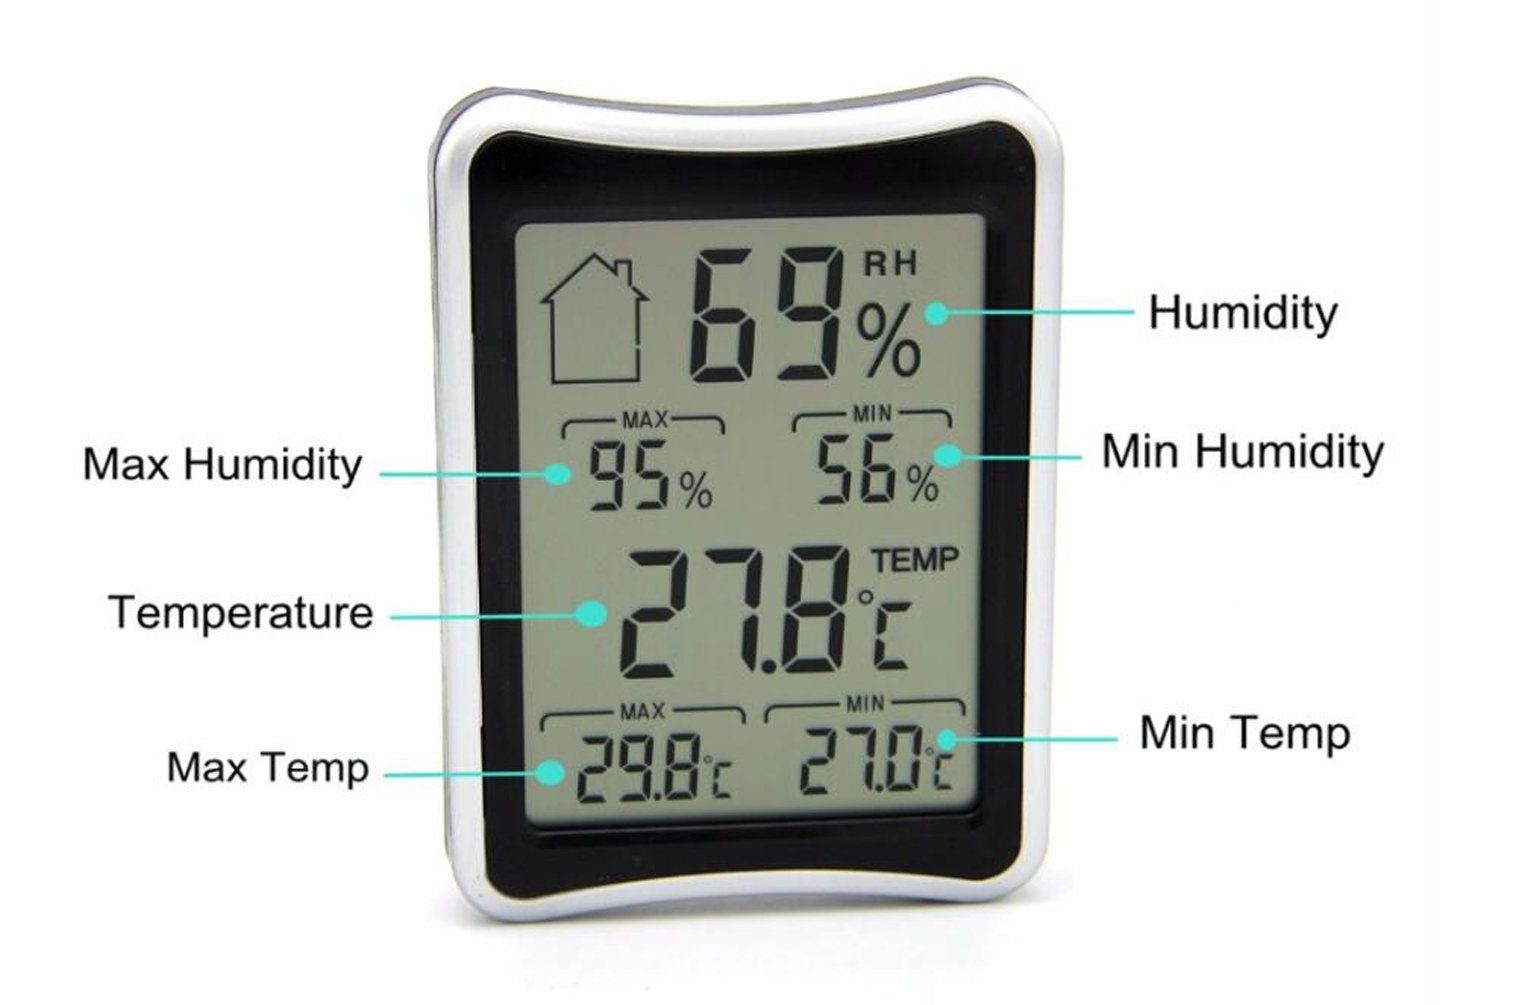 AMTAST Digital LCD Display Thermometer and Hygrometer Gauge, Light Weight and Portable